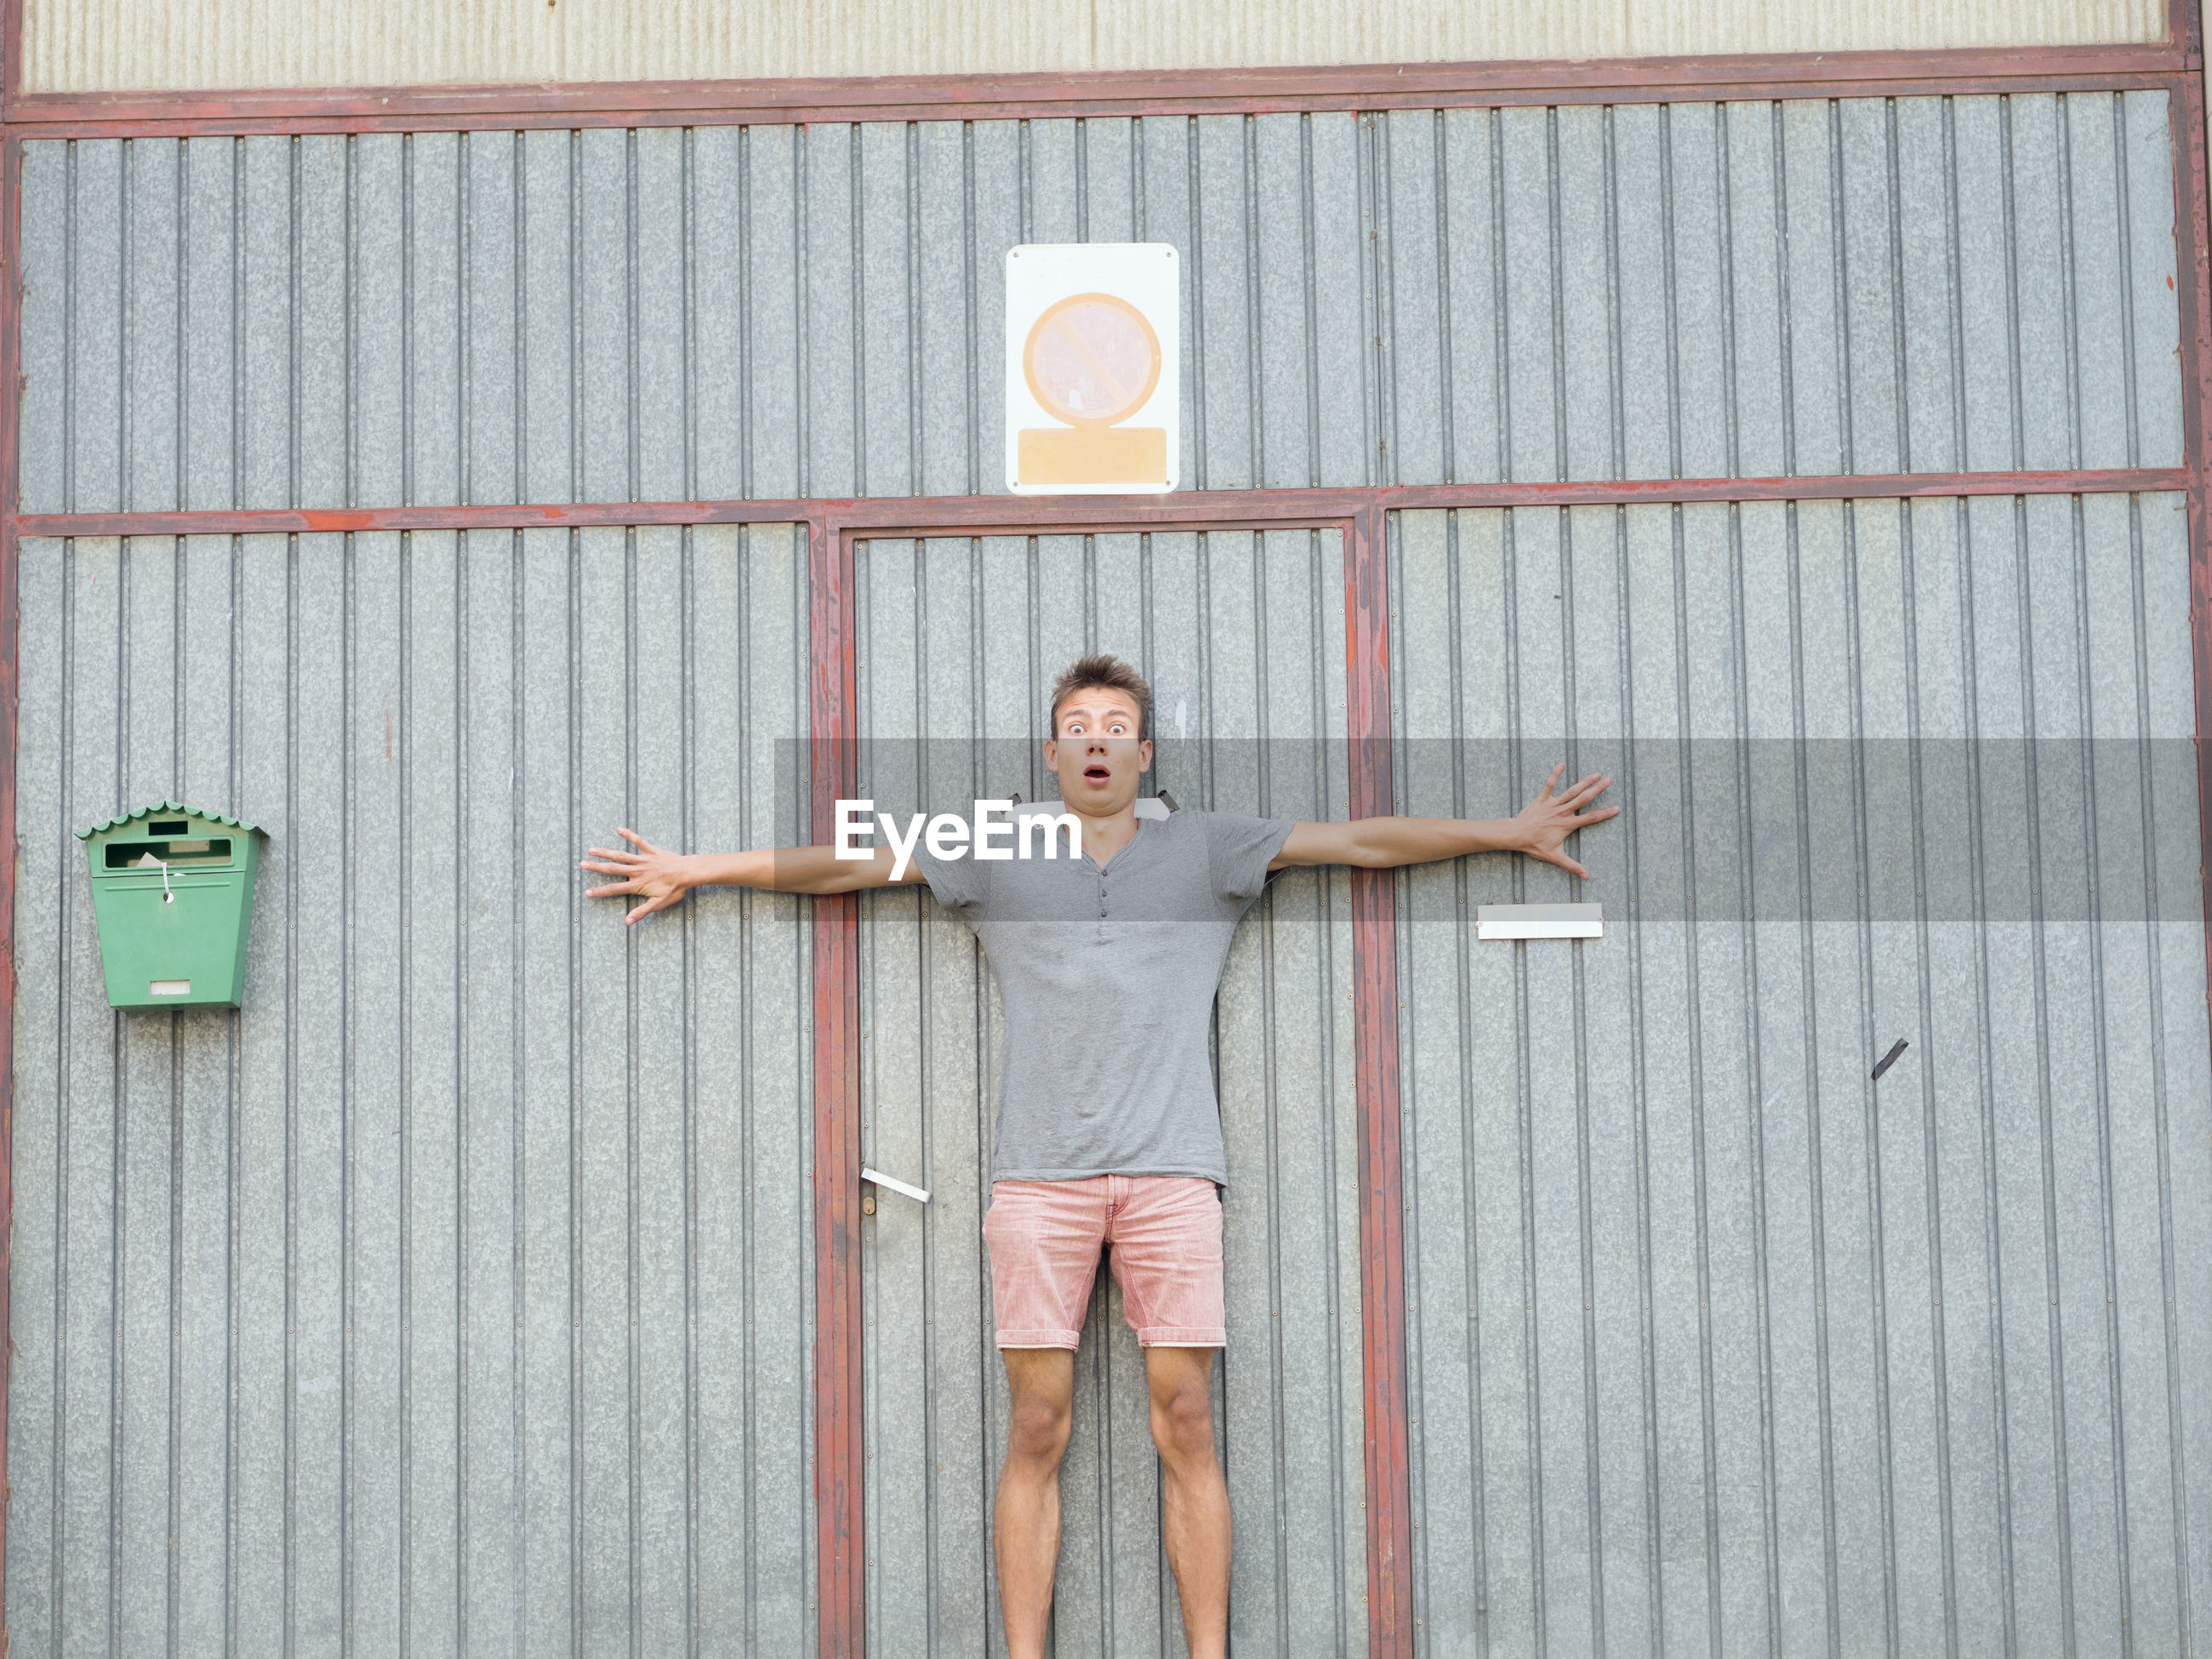 Portrait of shocked young man with arms outstretched against metallic door